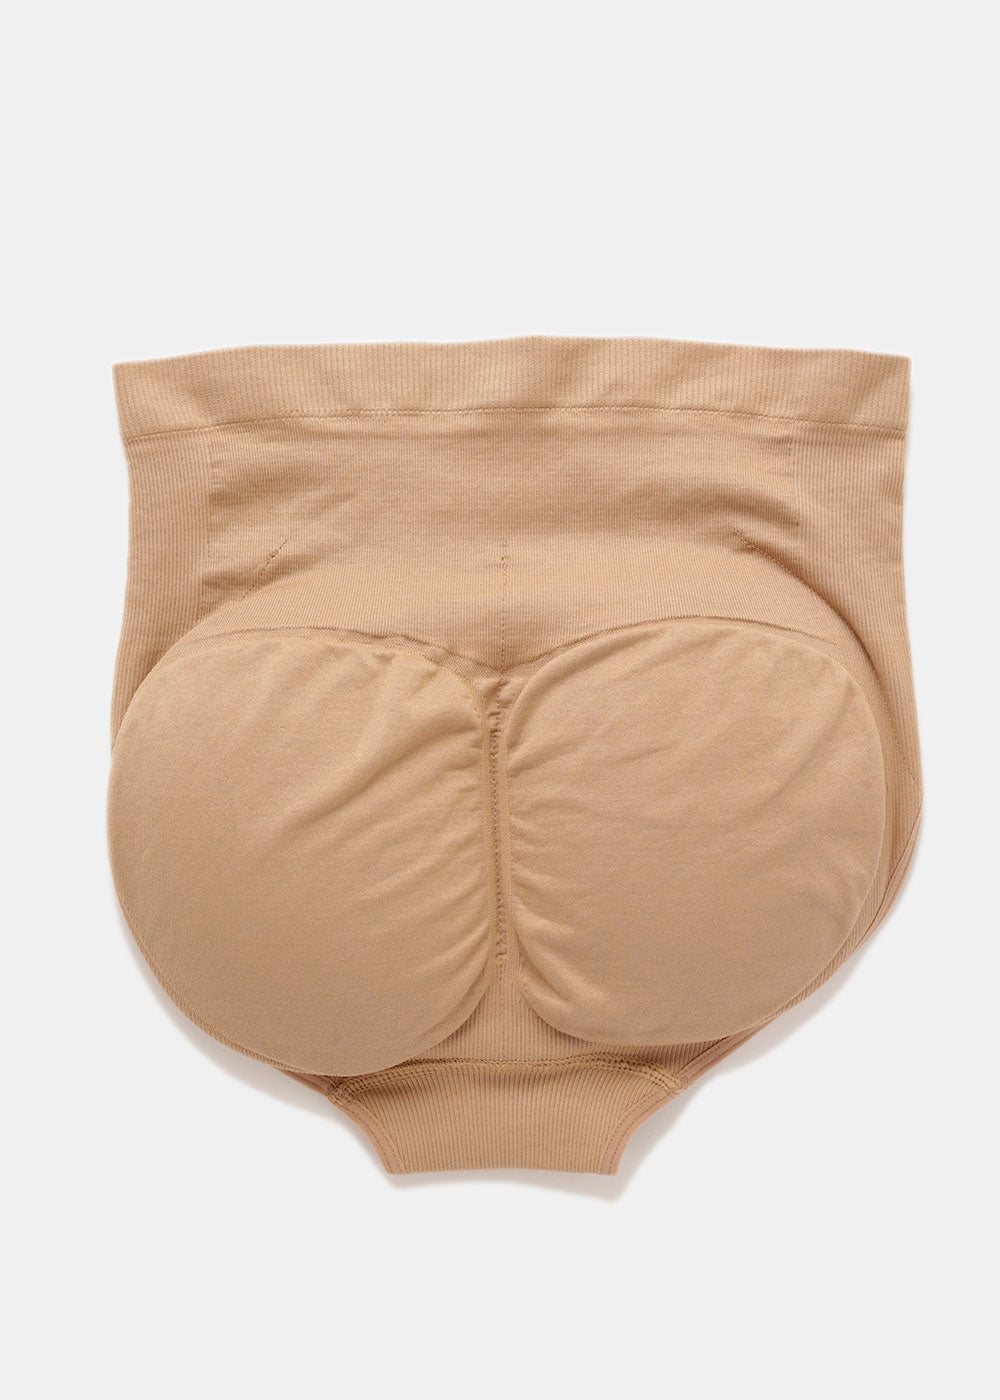 Padded Butt Lifting Panties - Beige